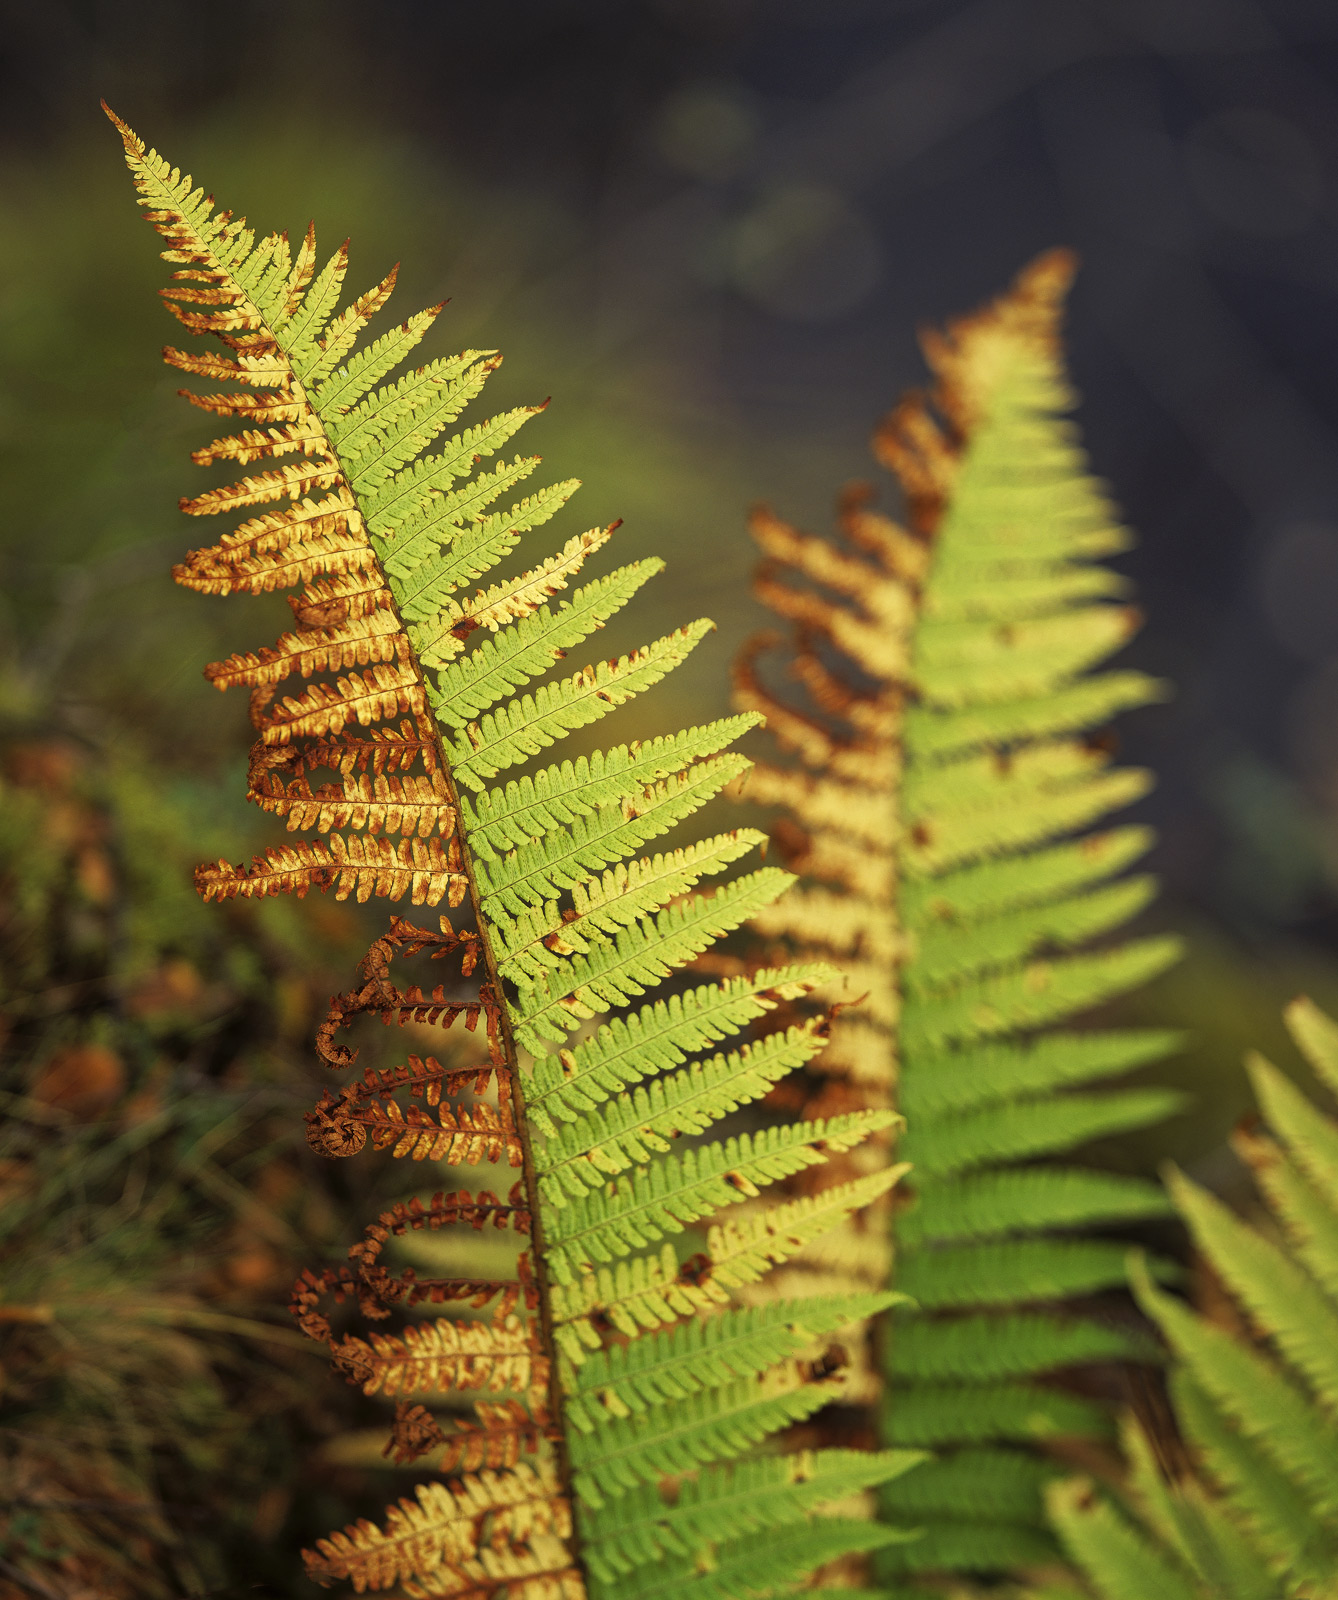 I came across these two wonderful schizophrenic bracken fronds with an autumnal split in colouration right along the length of...